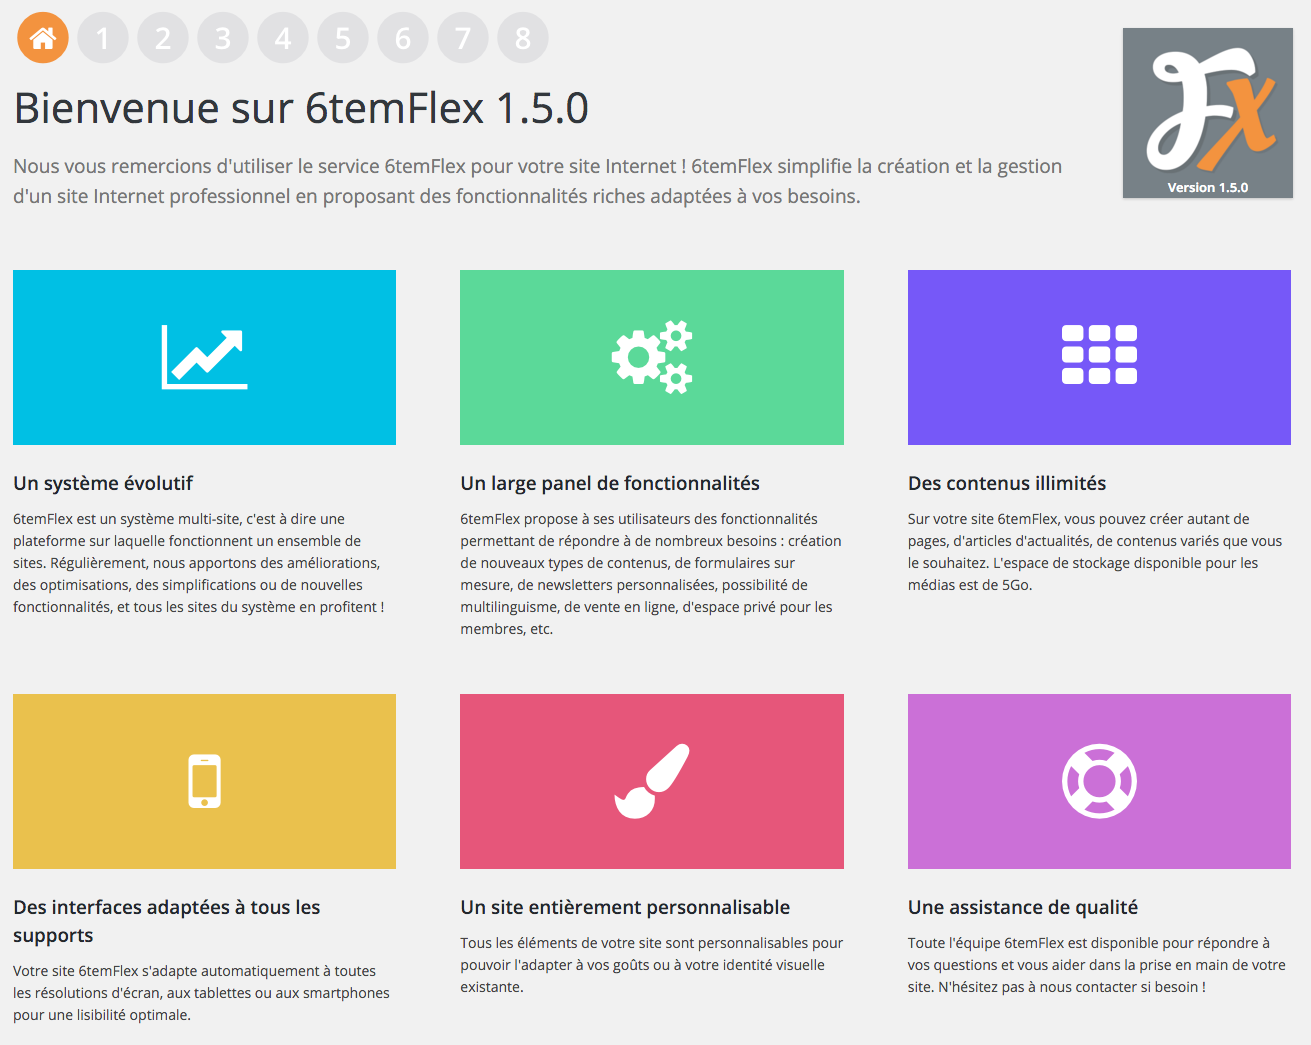 6temFlex en version 1.5.0